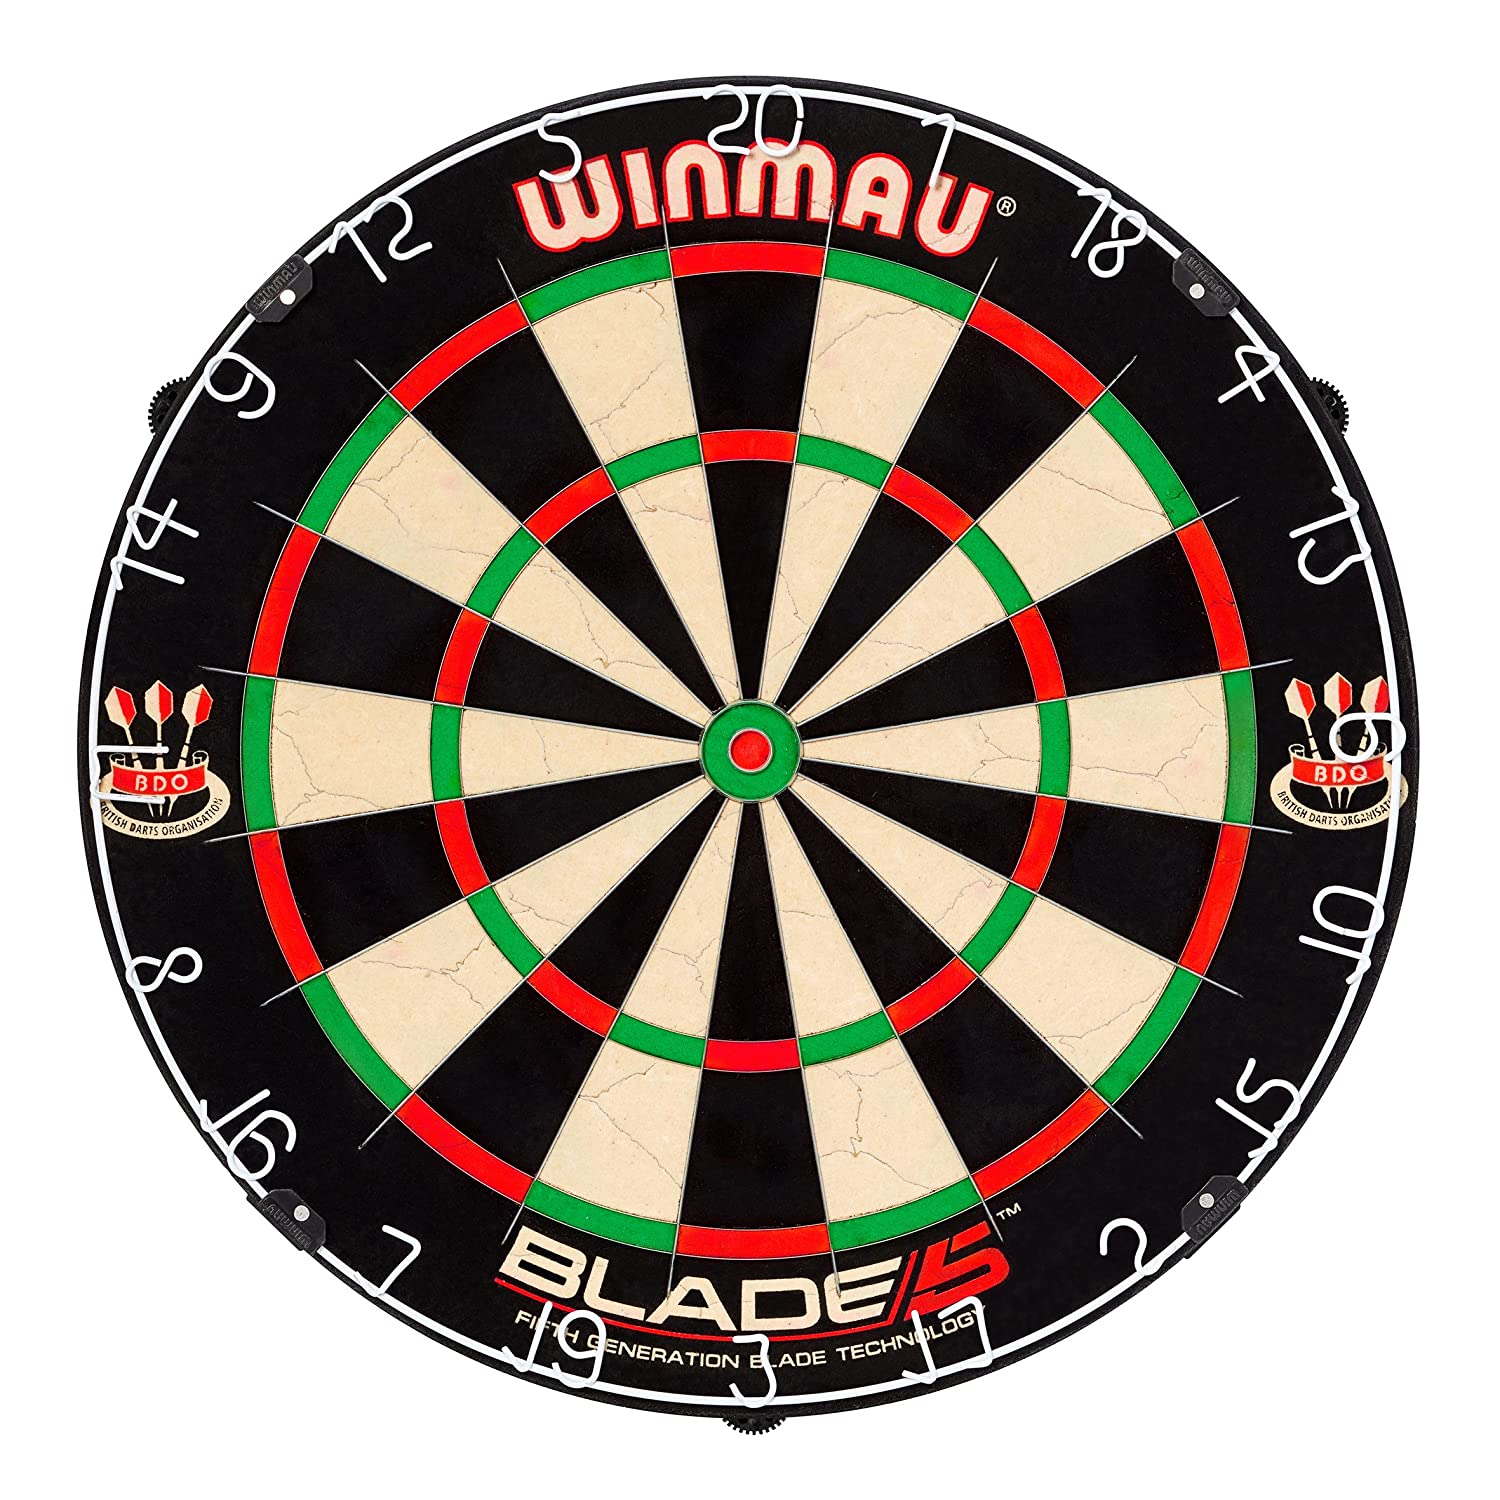 The Blade-4 Bristle Winmau Best Dart Board